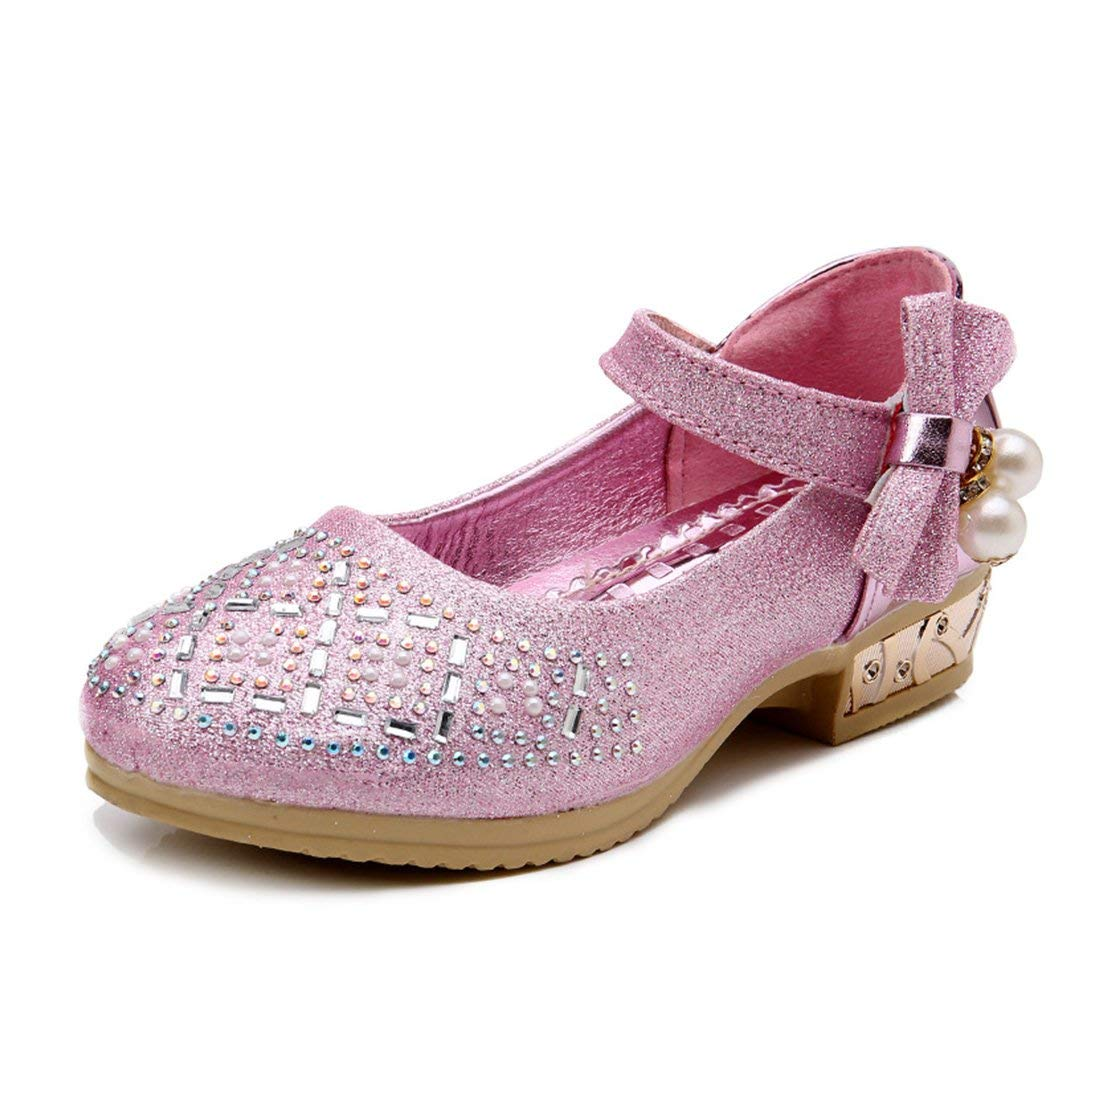 YIBLBOX Girls Kids Toddler Dress up Wedding Cosplay Princess Shoes Glitter Surface Mary Jane Low Heel Shoes